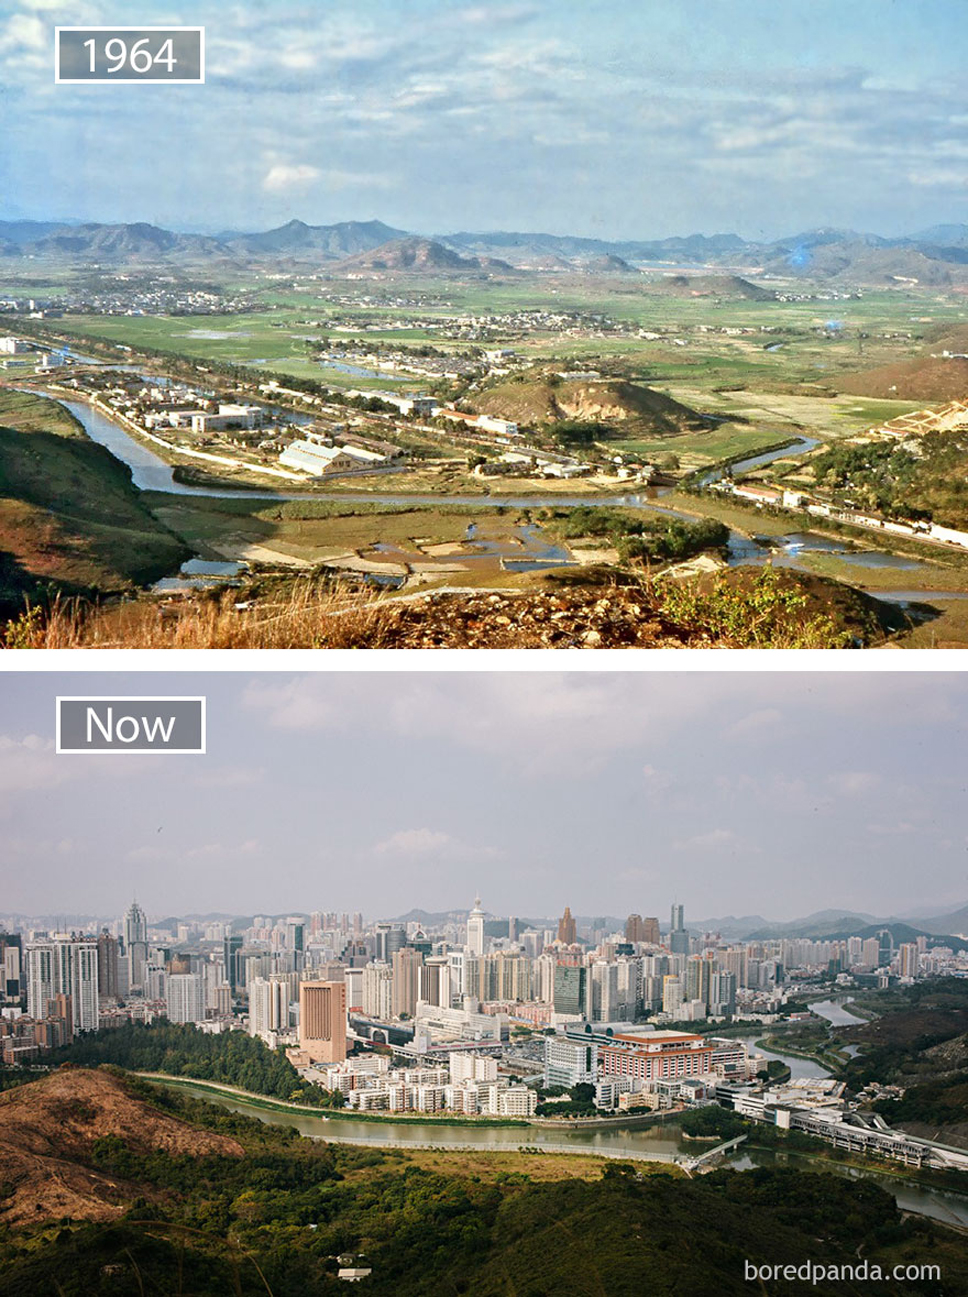 how-famous-city-changed-timelapse-evolution-before-after-9-5774e6518e421__880